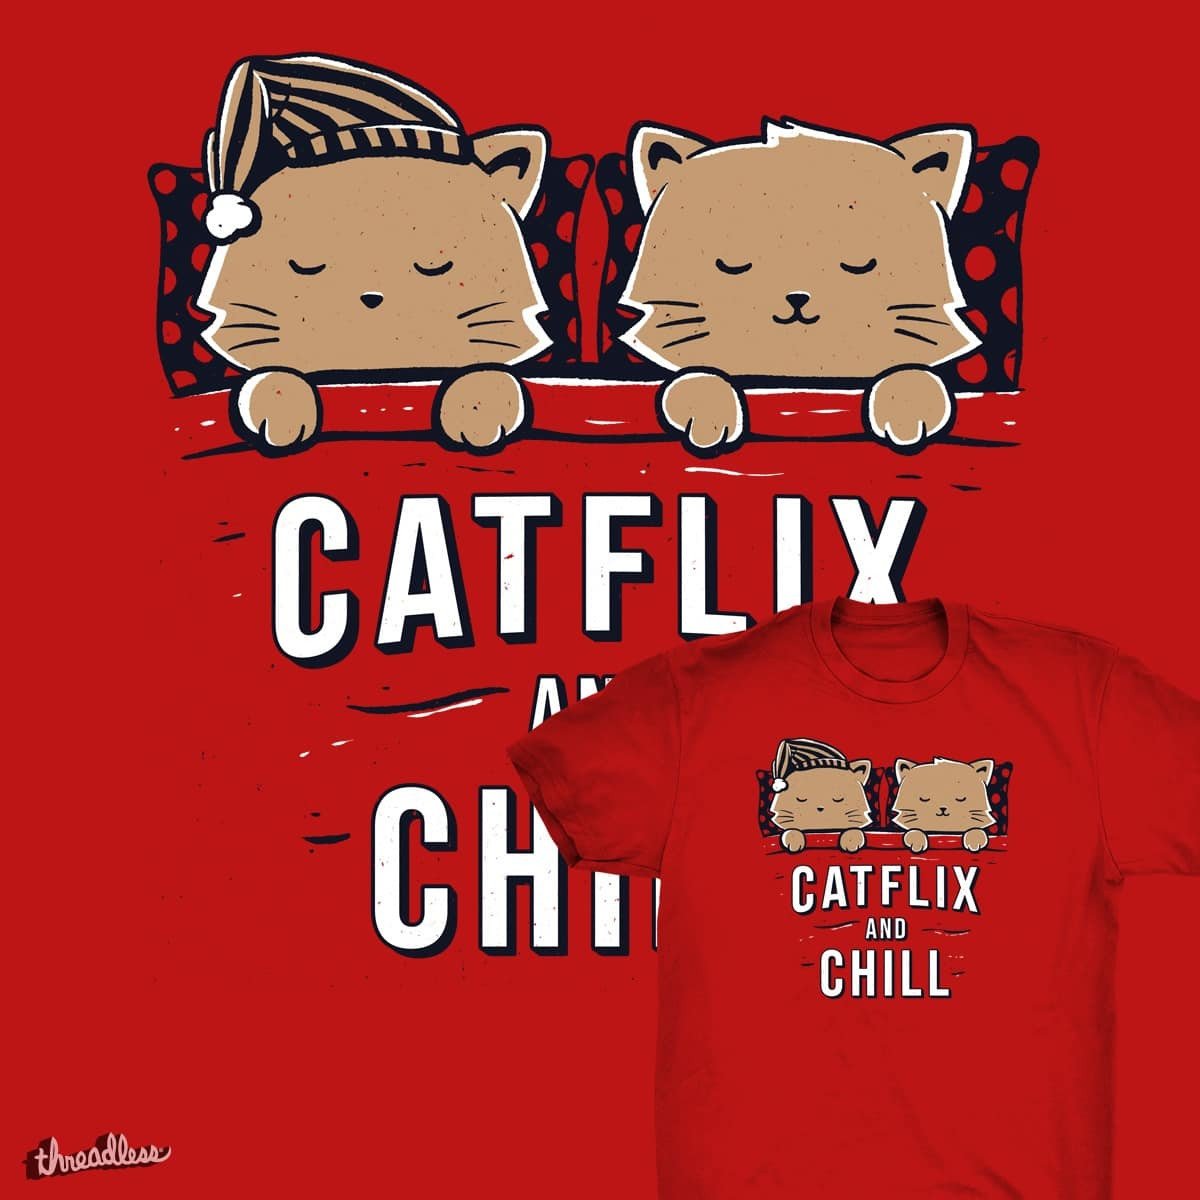 Catflix And Chill by tobefonseca on Threadless